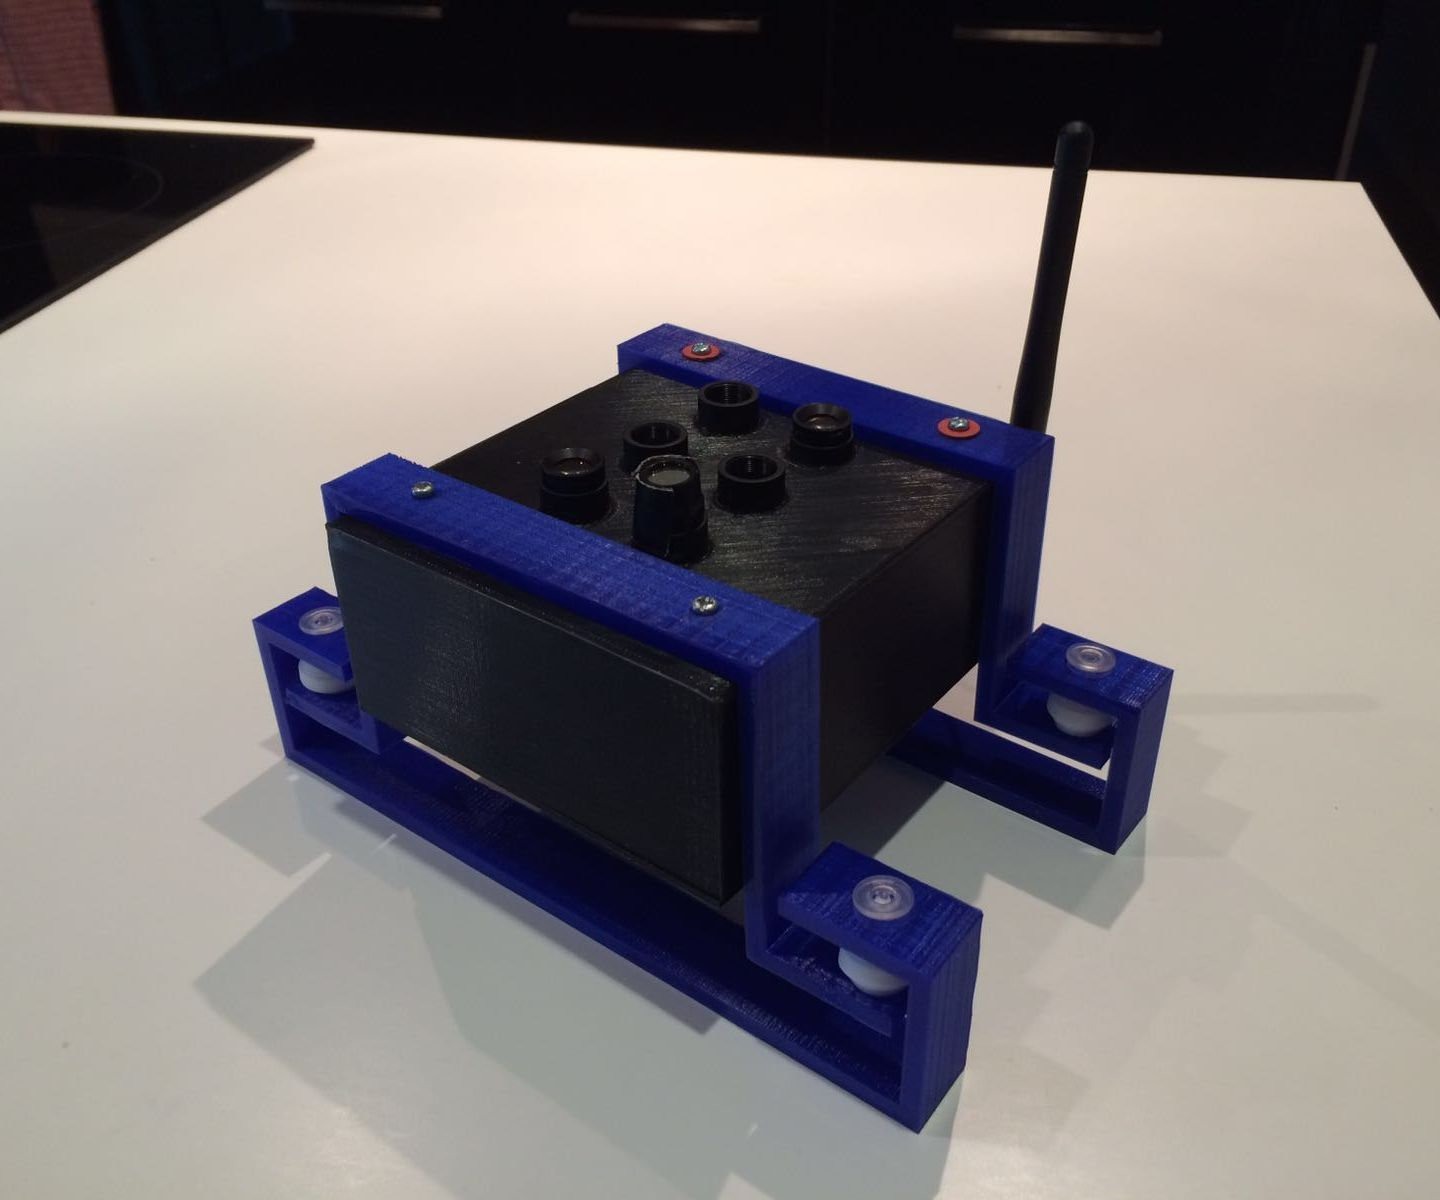 A Raspberry Pi Multispectral Camera: 8 Steps (with Pictures)